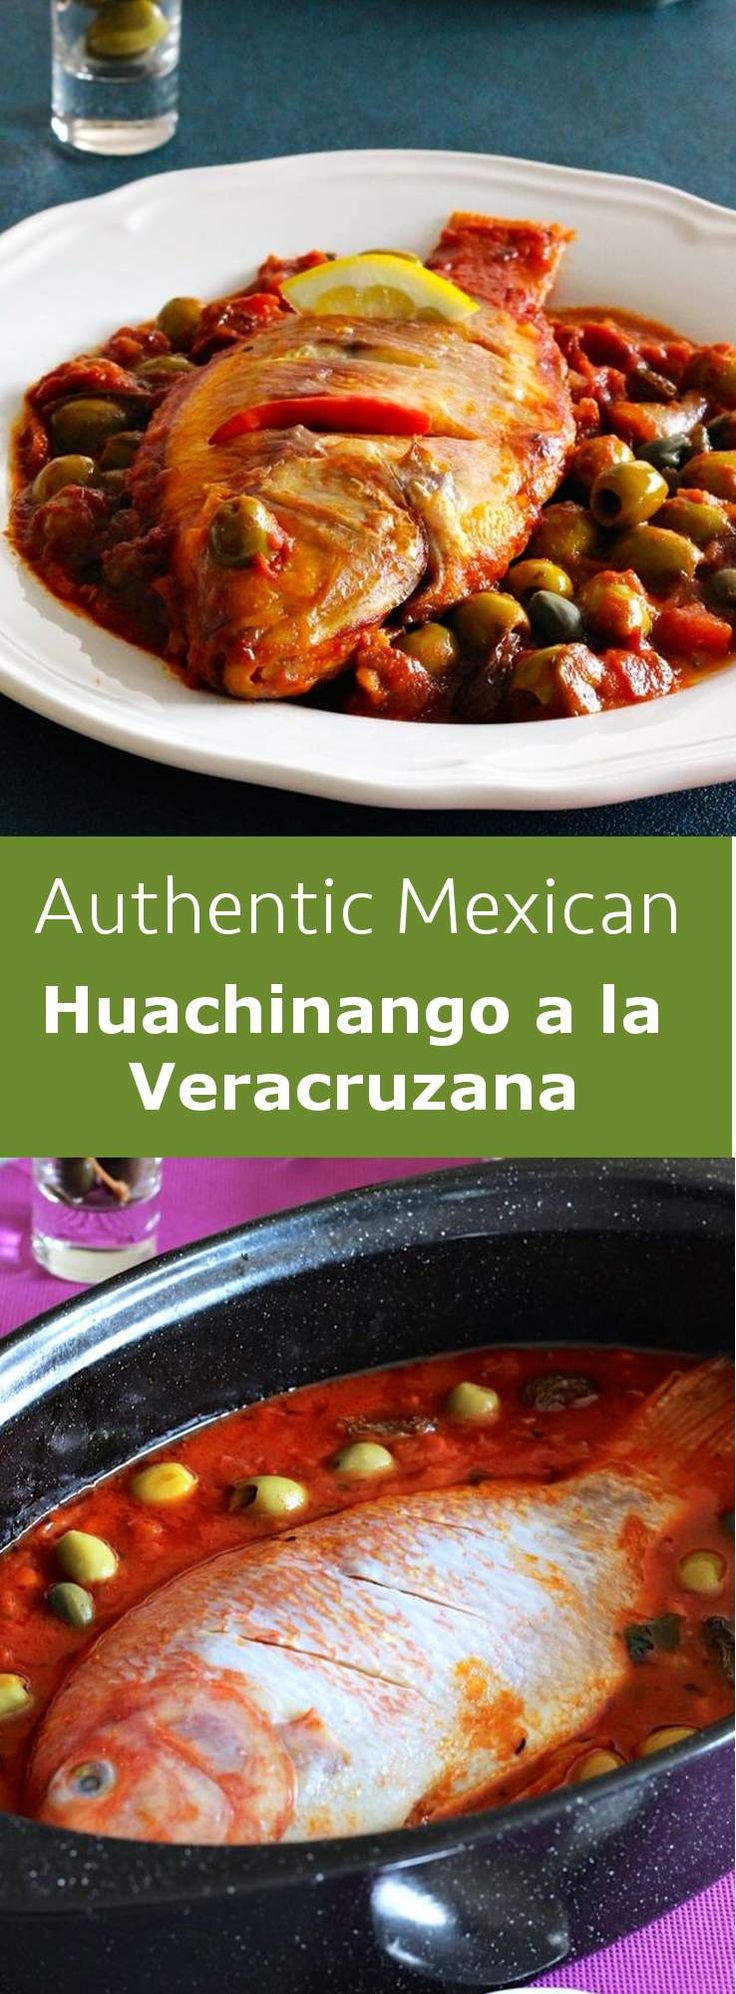 Huachinango a la Veracruzana is a traditional Mexican main course prepared with red snapper cooked in a spicy tomato sauce. #fish #